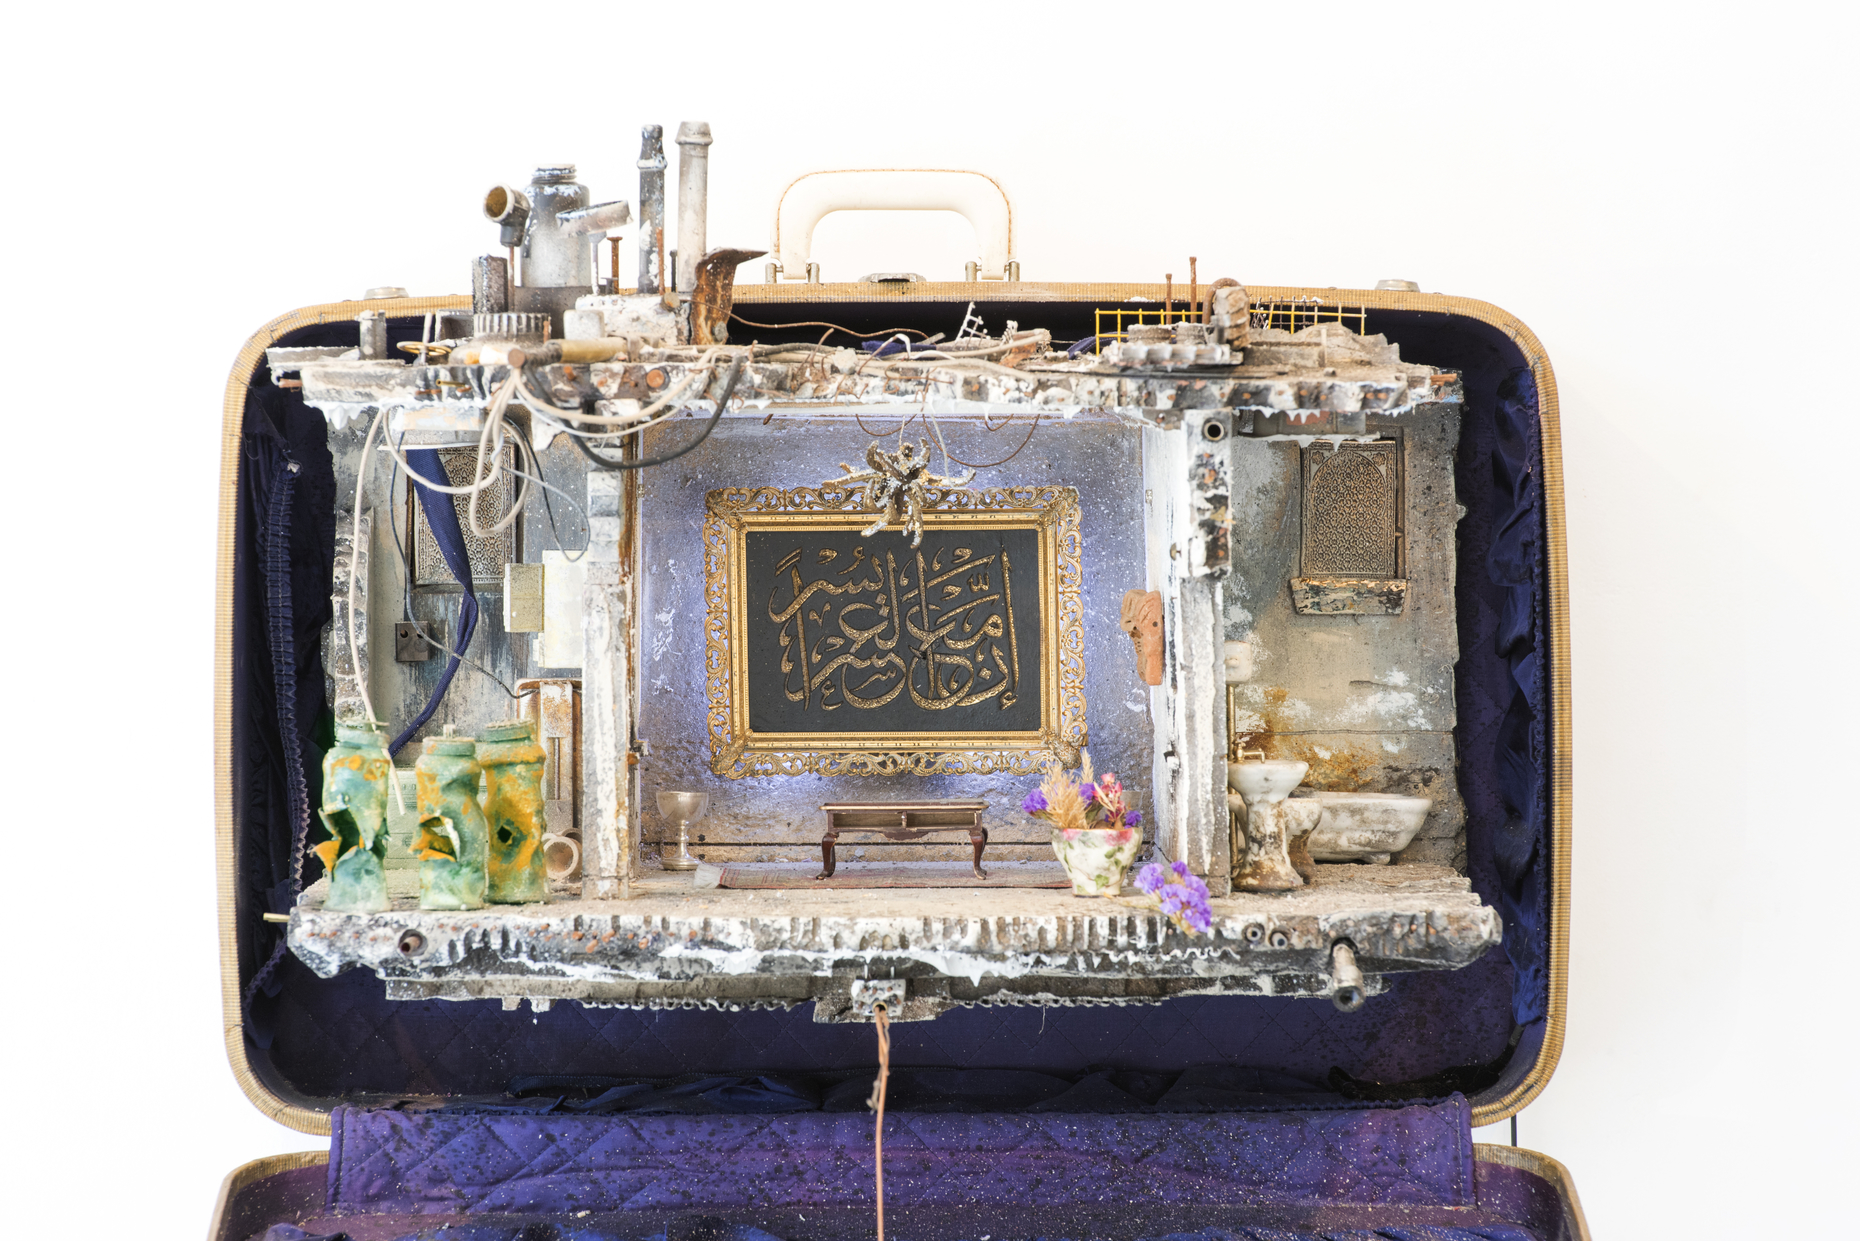 A suitcase made by Mohamed Hafez